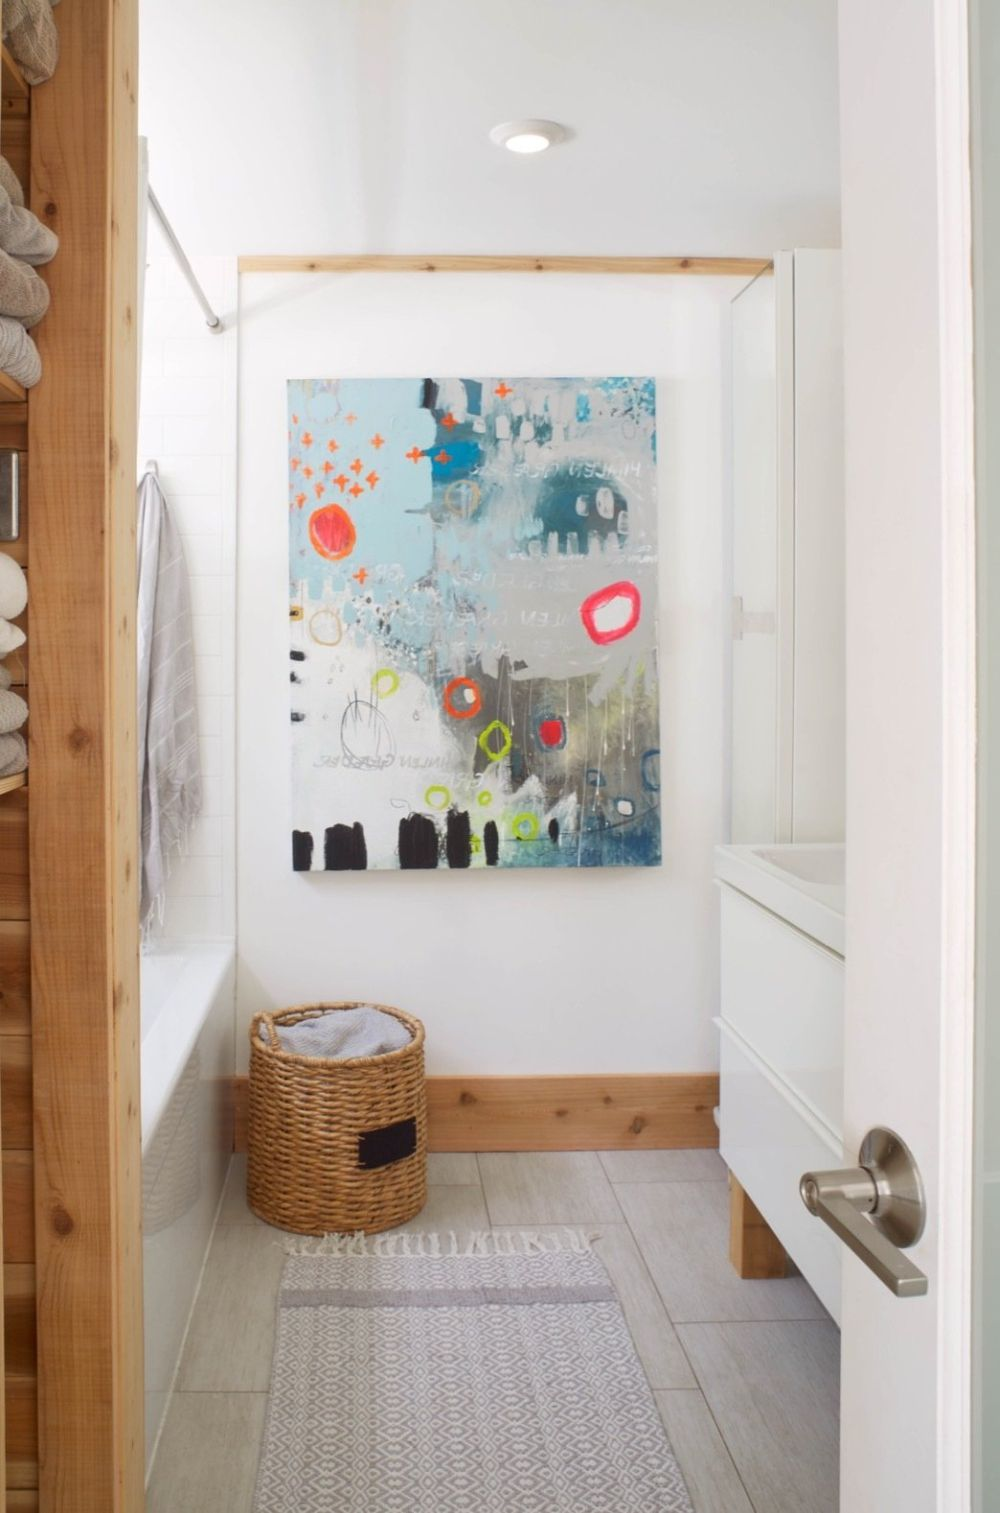 The same simple, Scandinavian-inspired decor was used in all the spaces, including the bathroom